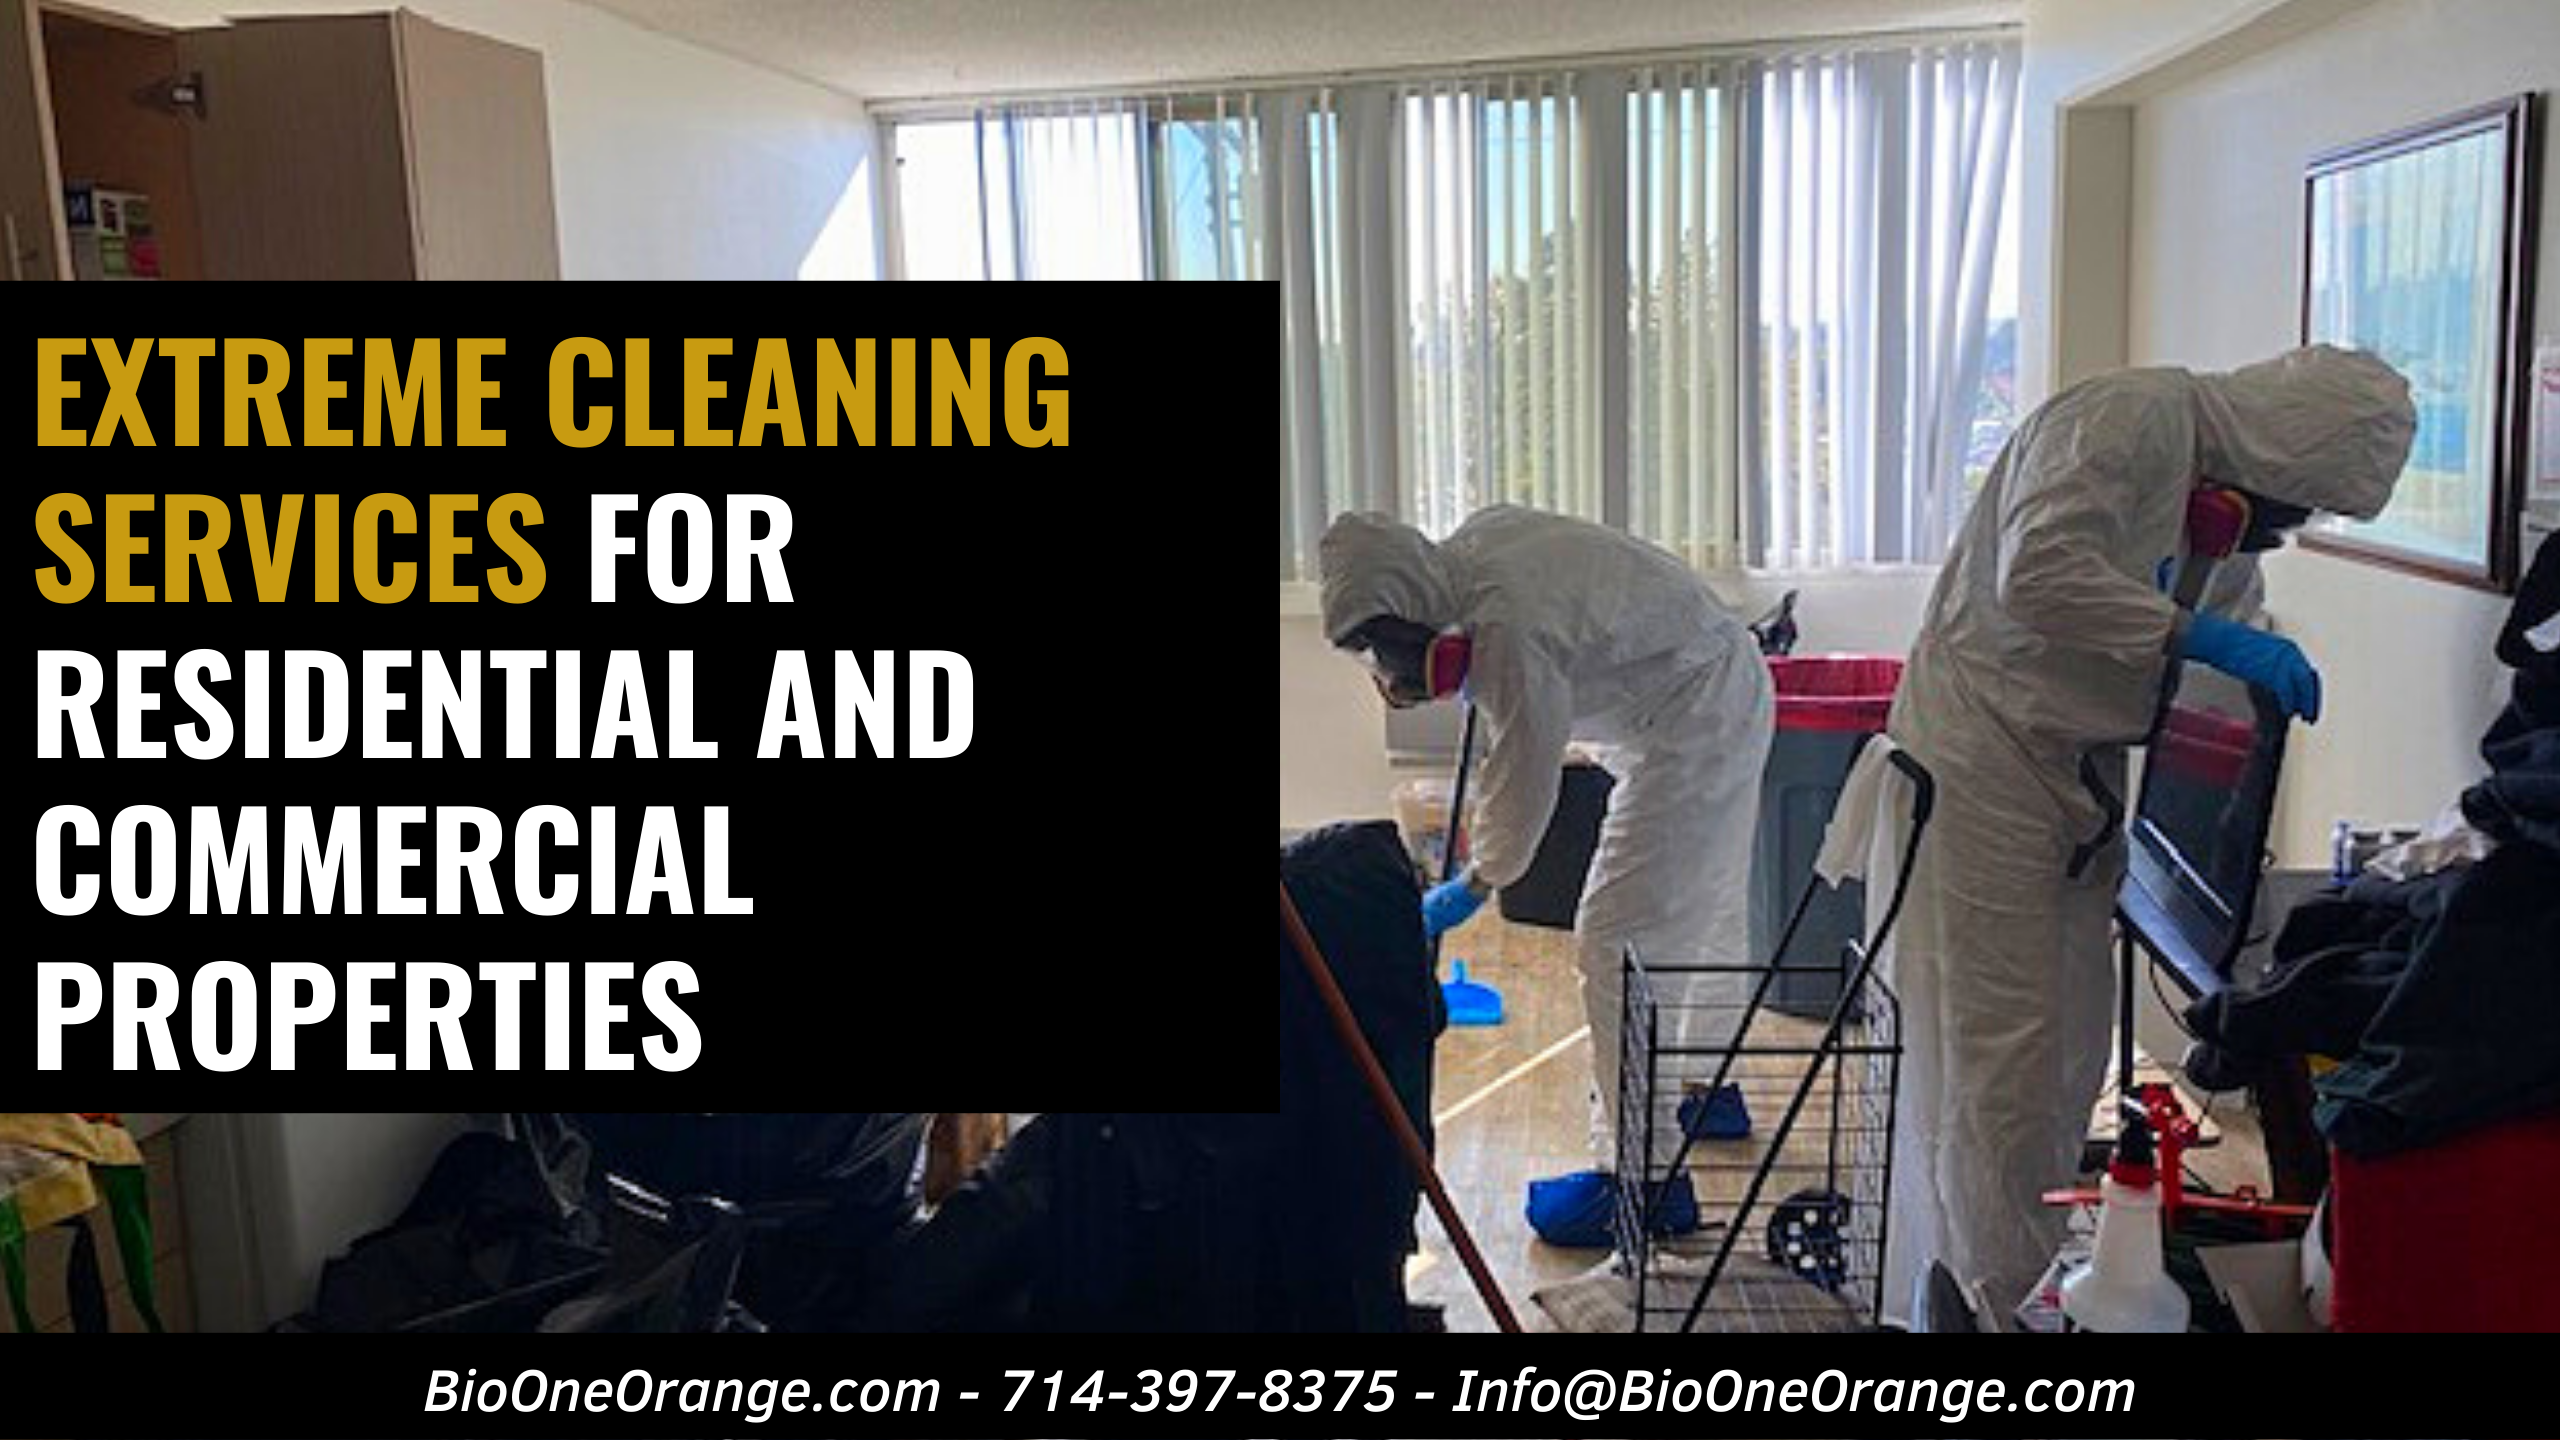 Bio-One of Orange provides Extreme Cleaning Services for Residential and Commercial Properties!